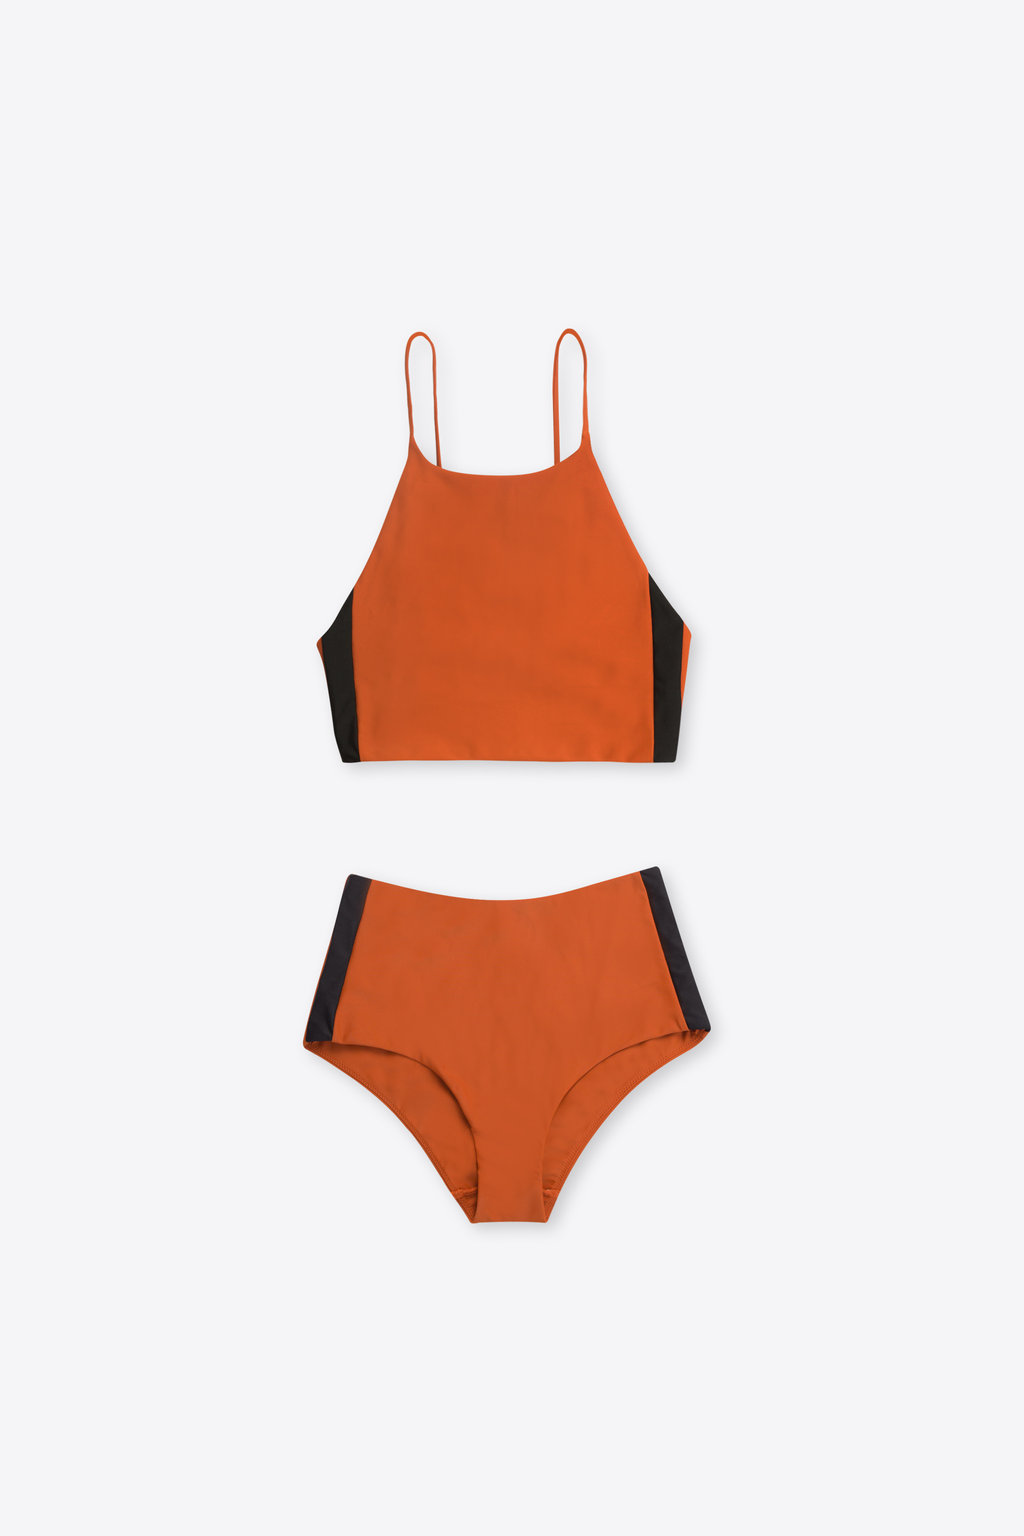 Bikini Top 2203 Orange 8